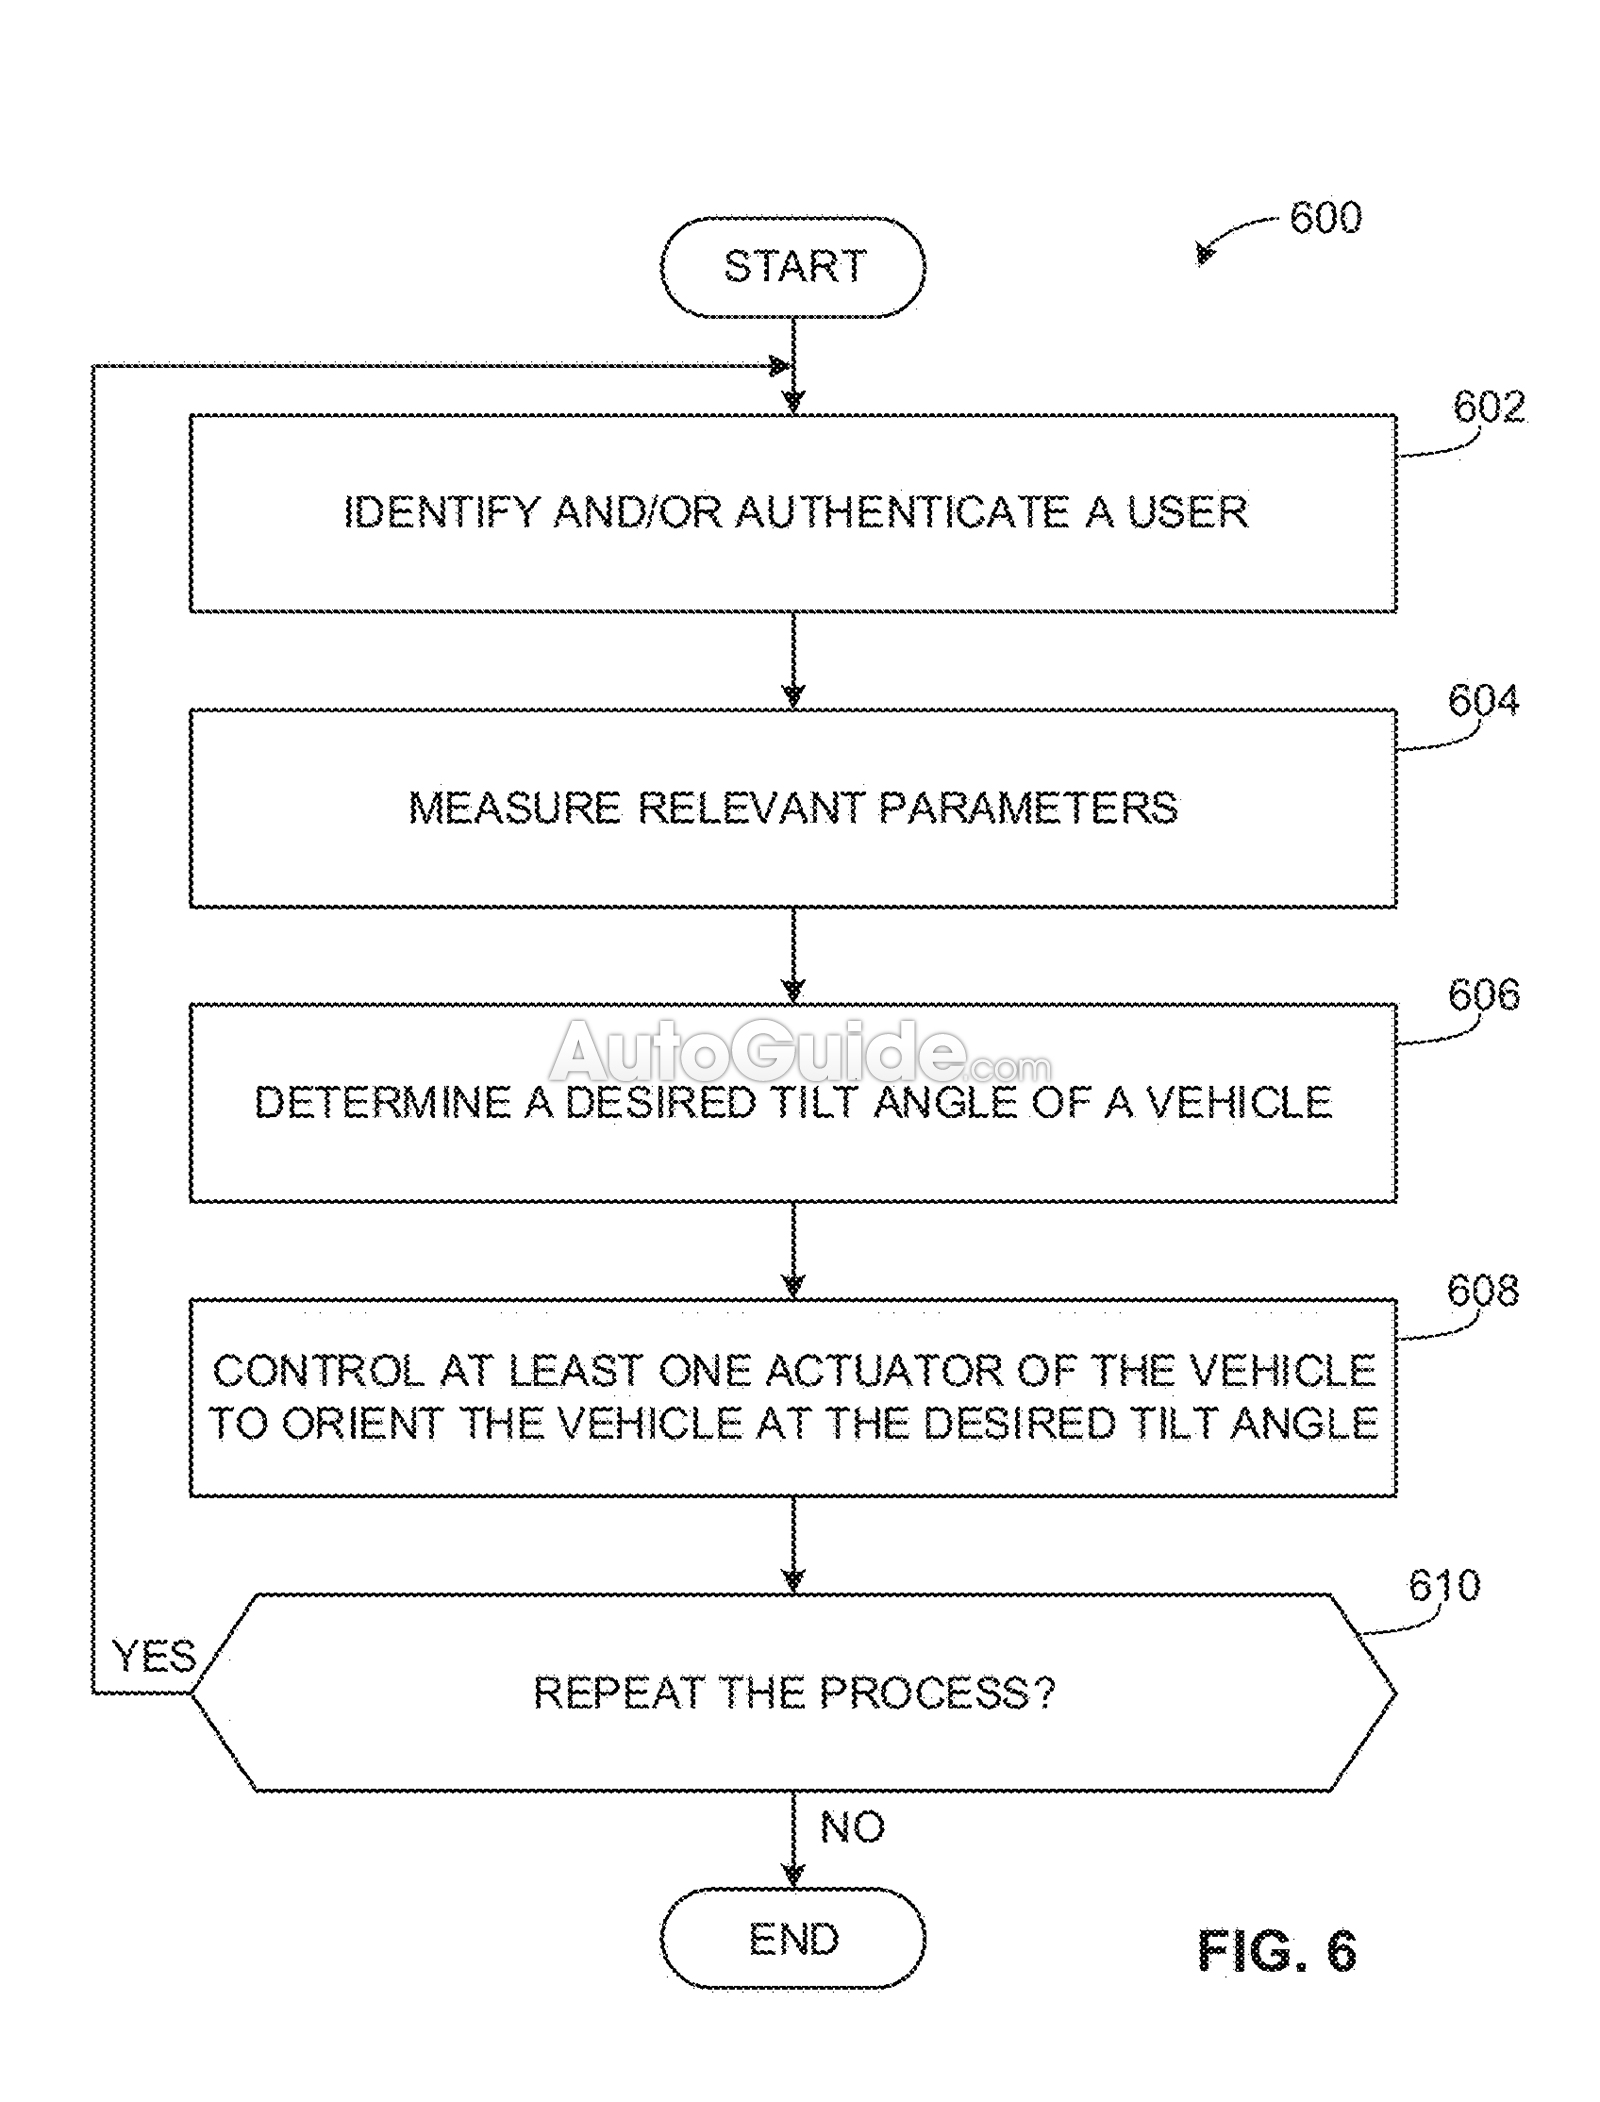 ford-vehicle-tilting-system-patent-06